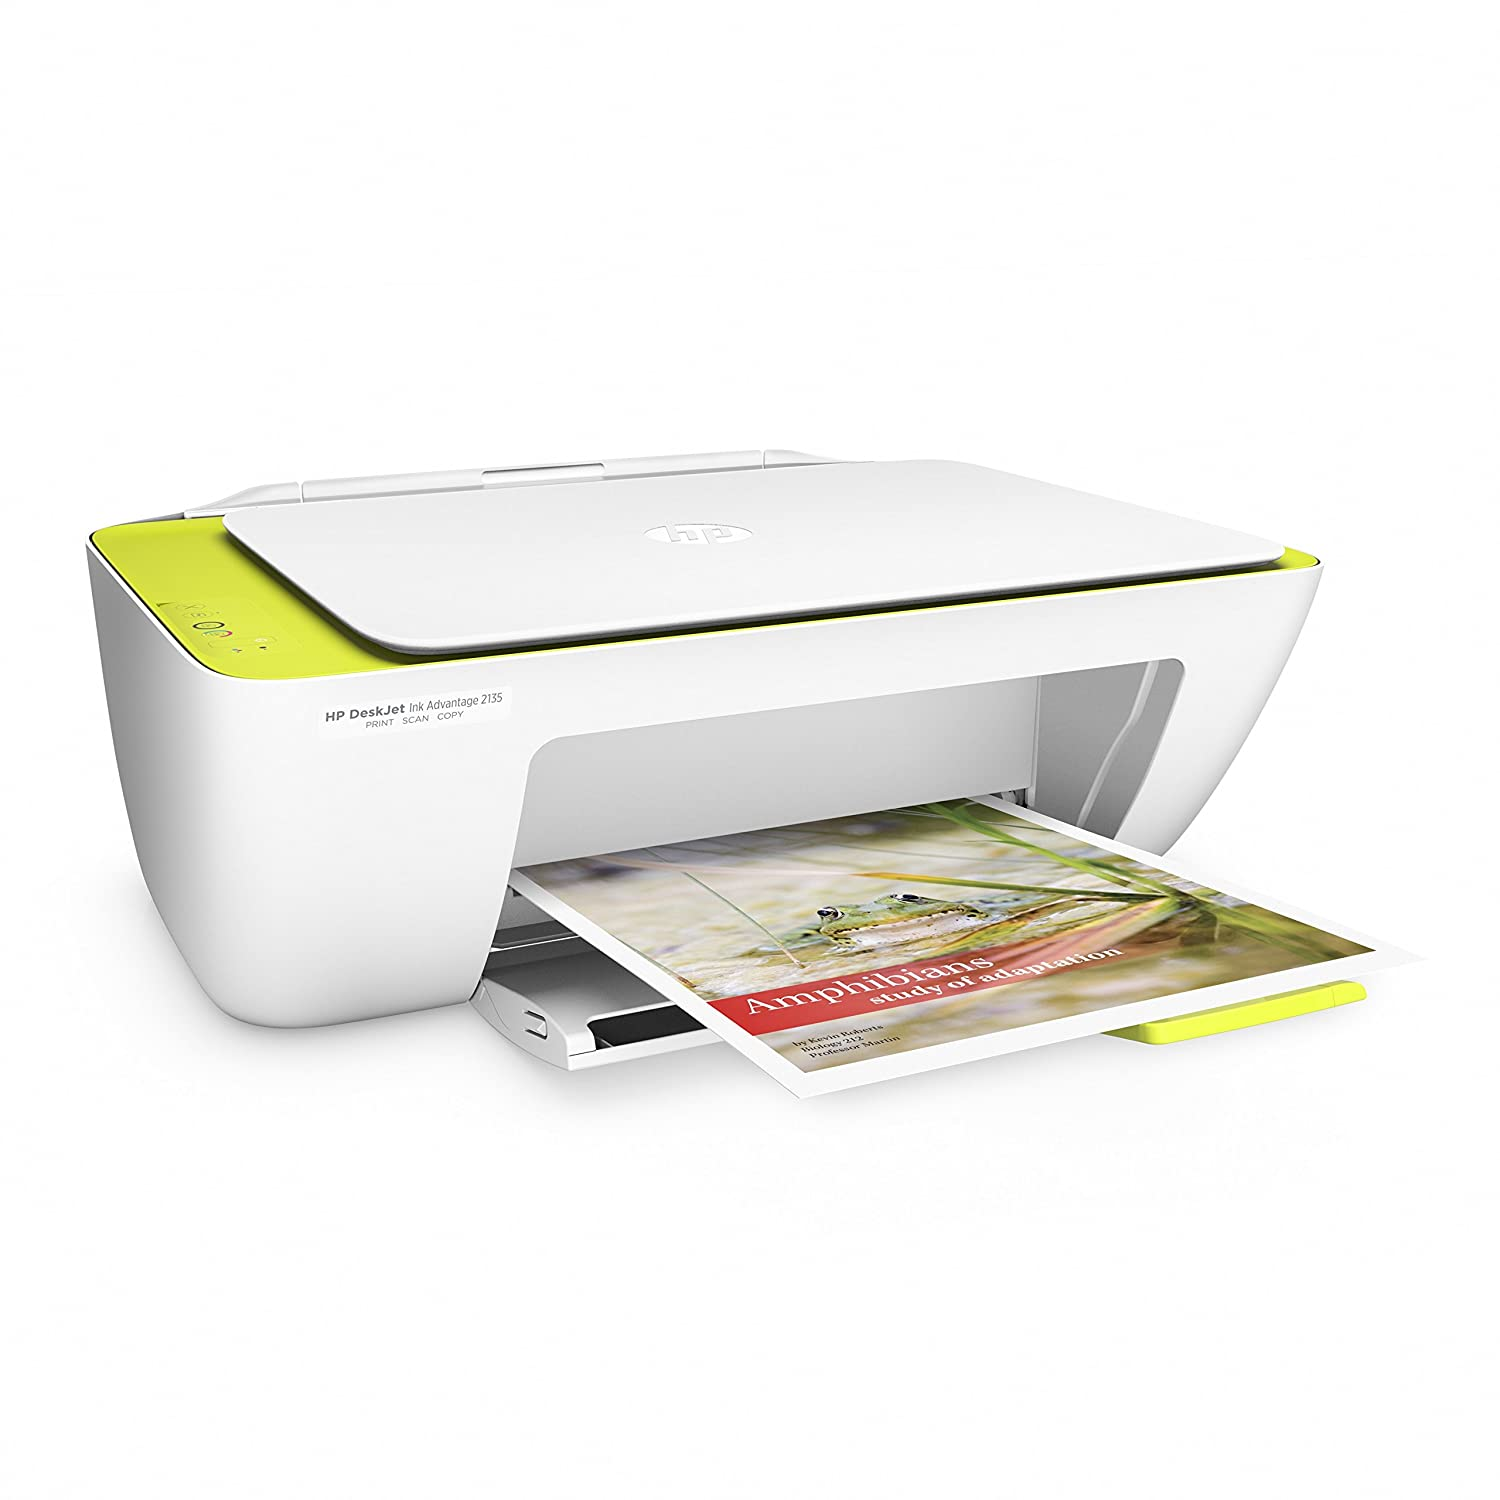 Deals on HP DeskJet Ink Advantage All in One Printer